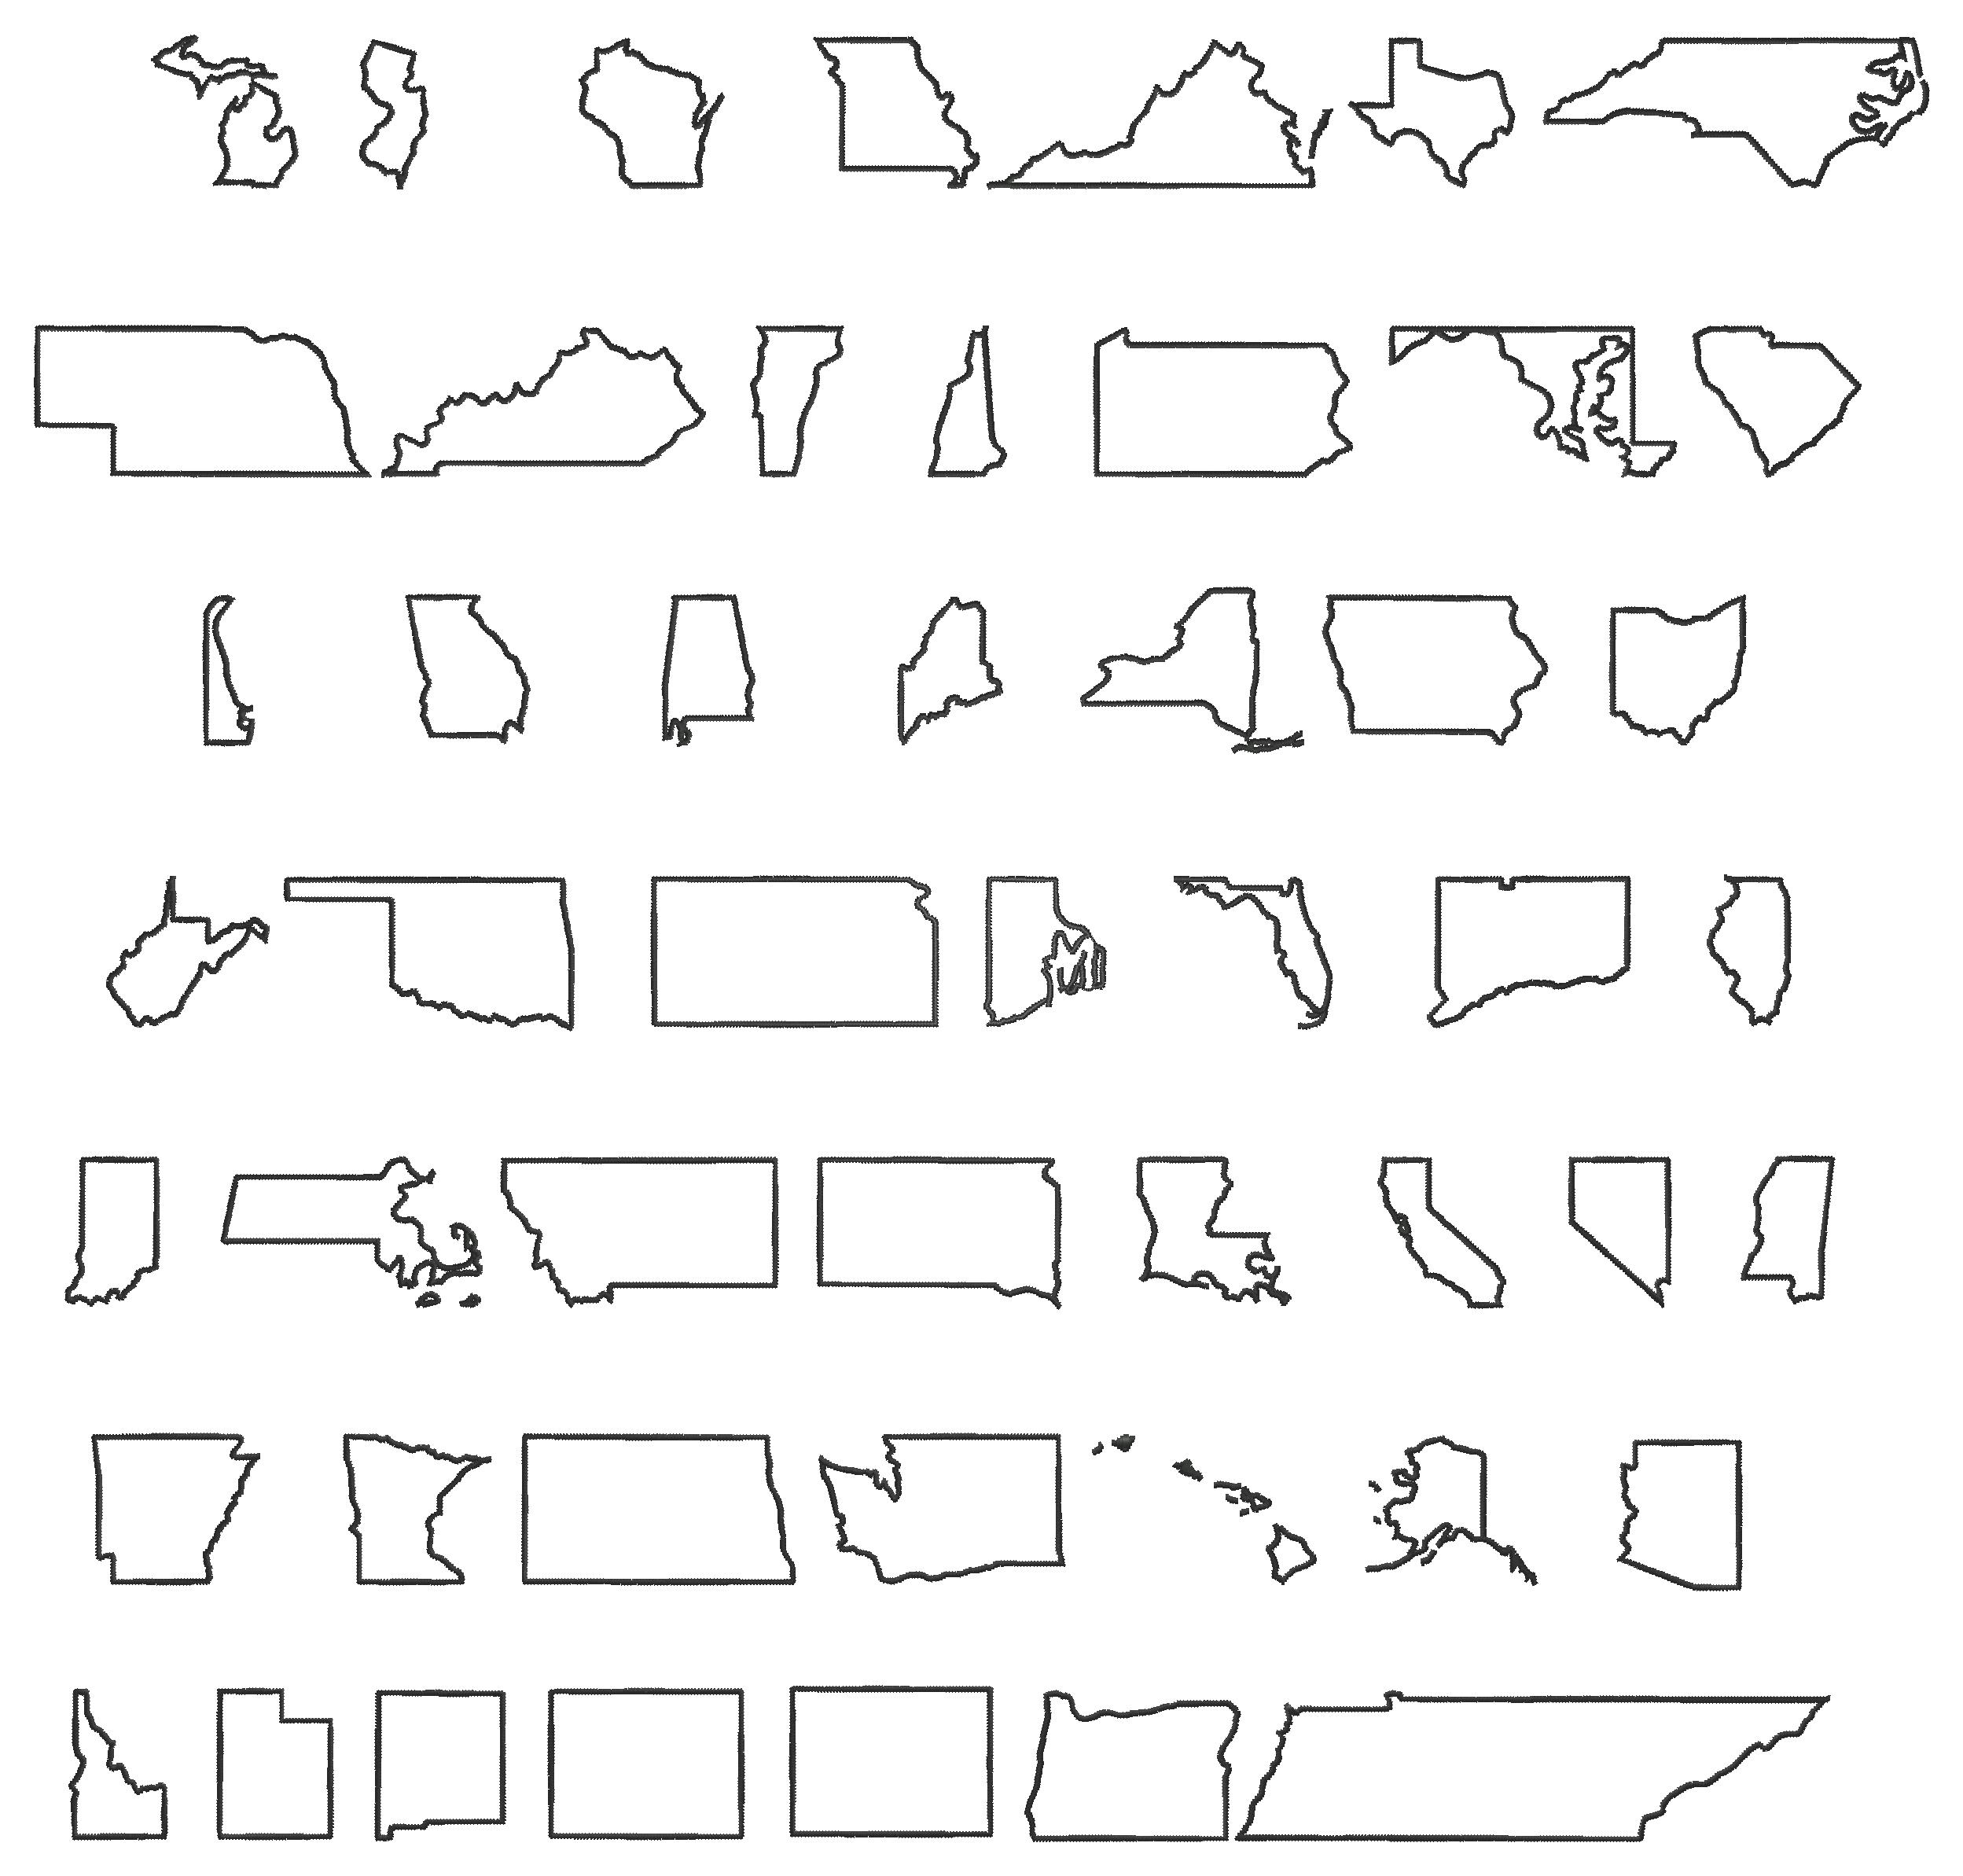 50 State Outline